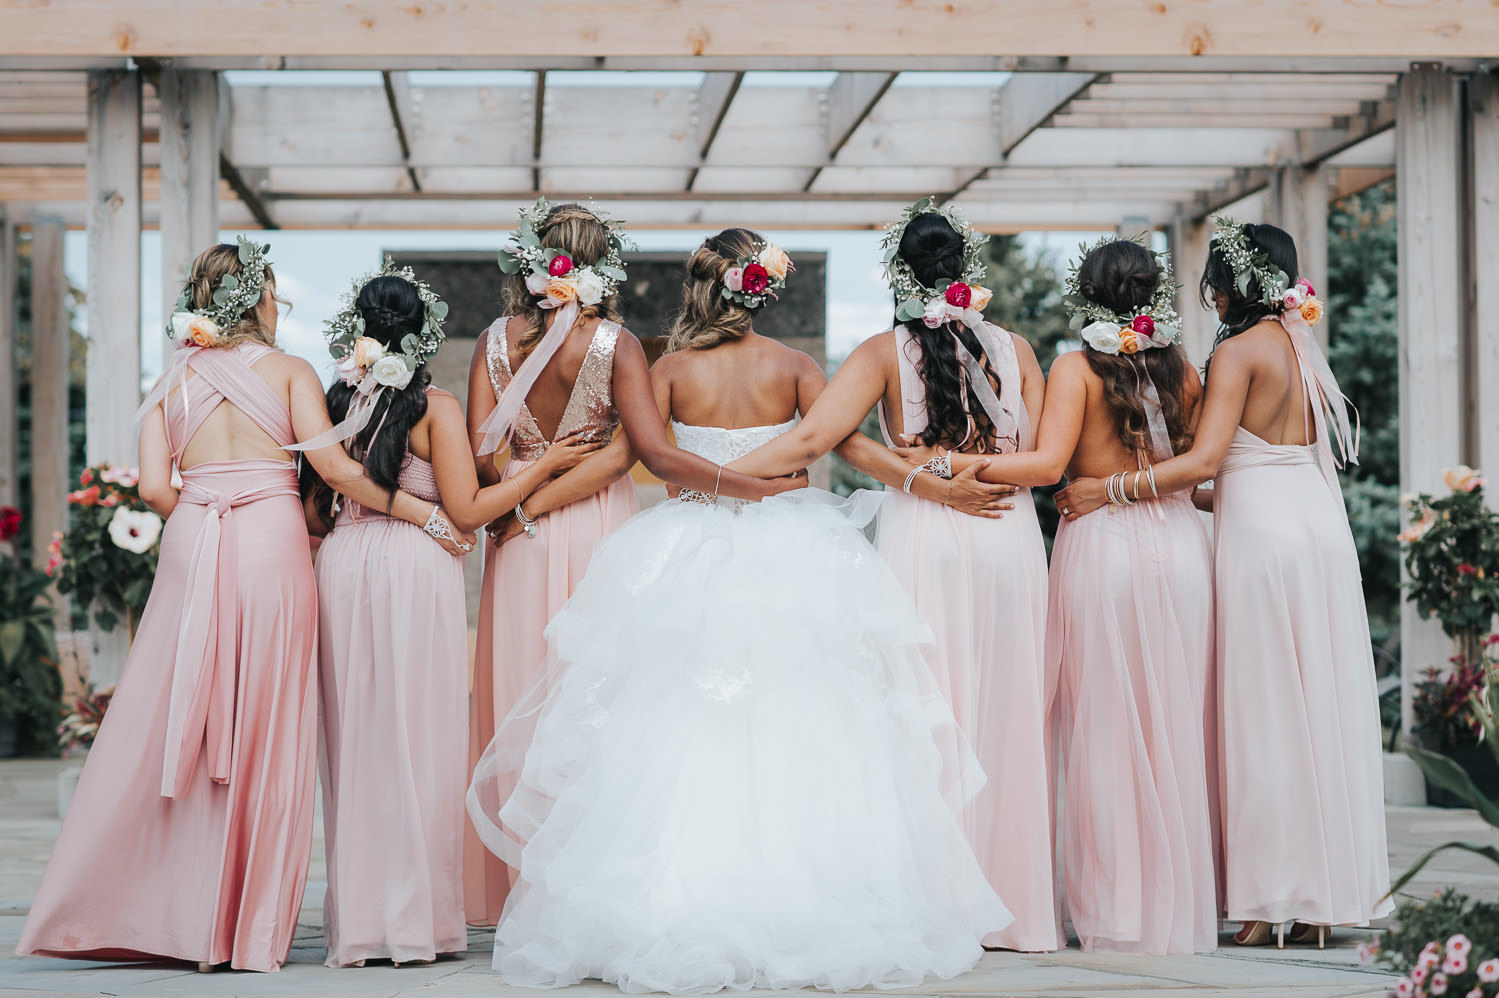 Bridesmaids at a Toronto Outdoor Wedding Photo